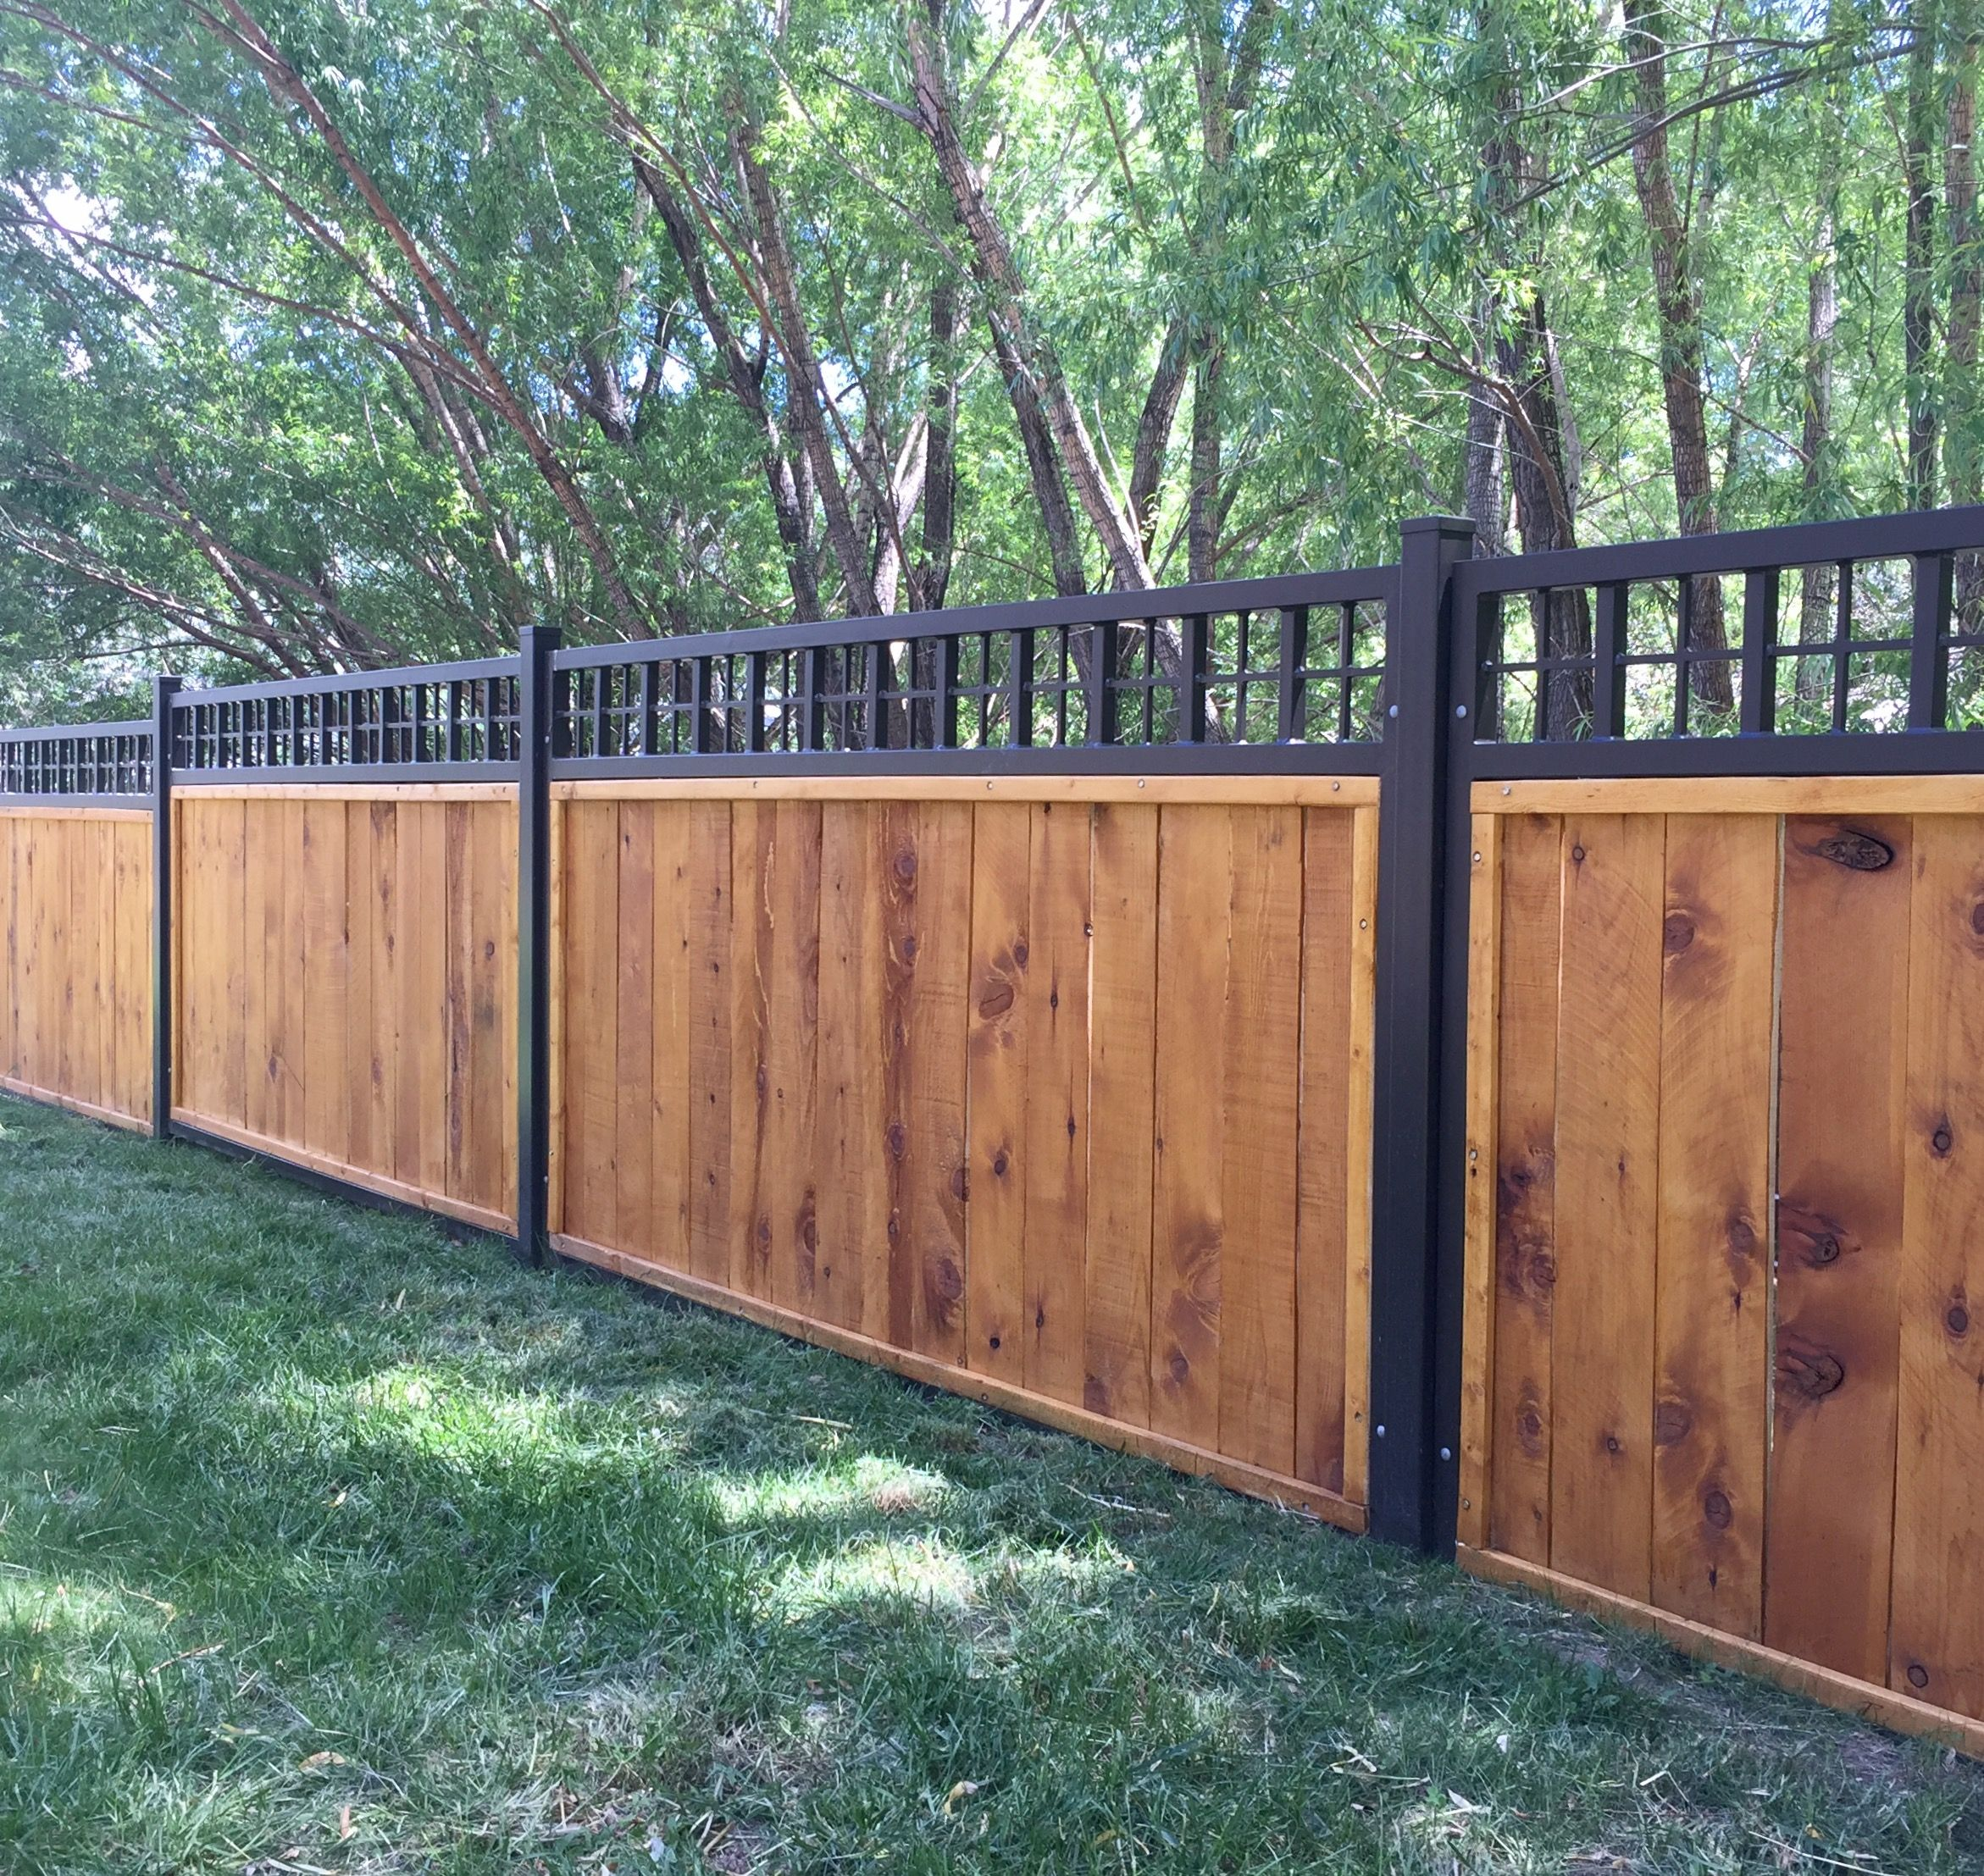 Steel Frame Fence Panels With Wood Privacy Fence Is A Unique And